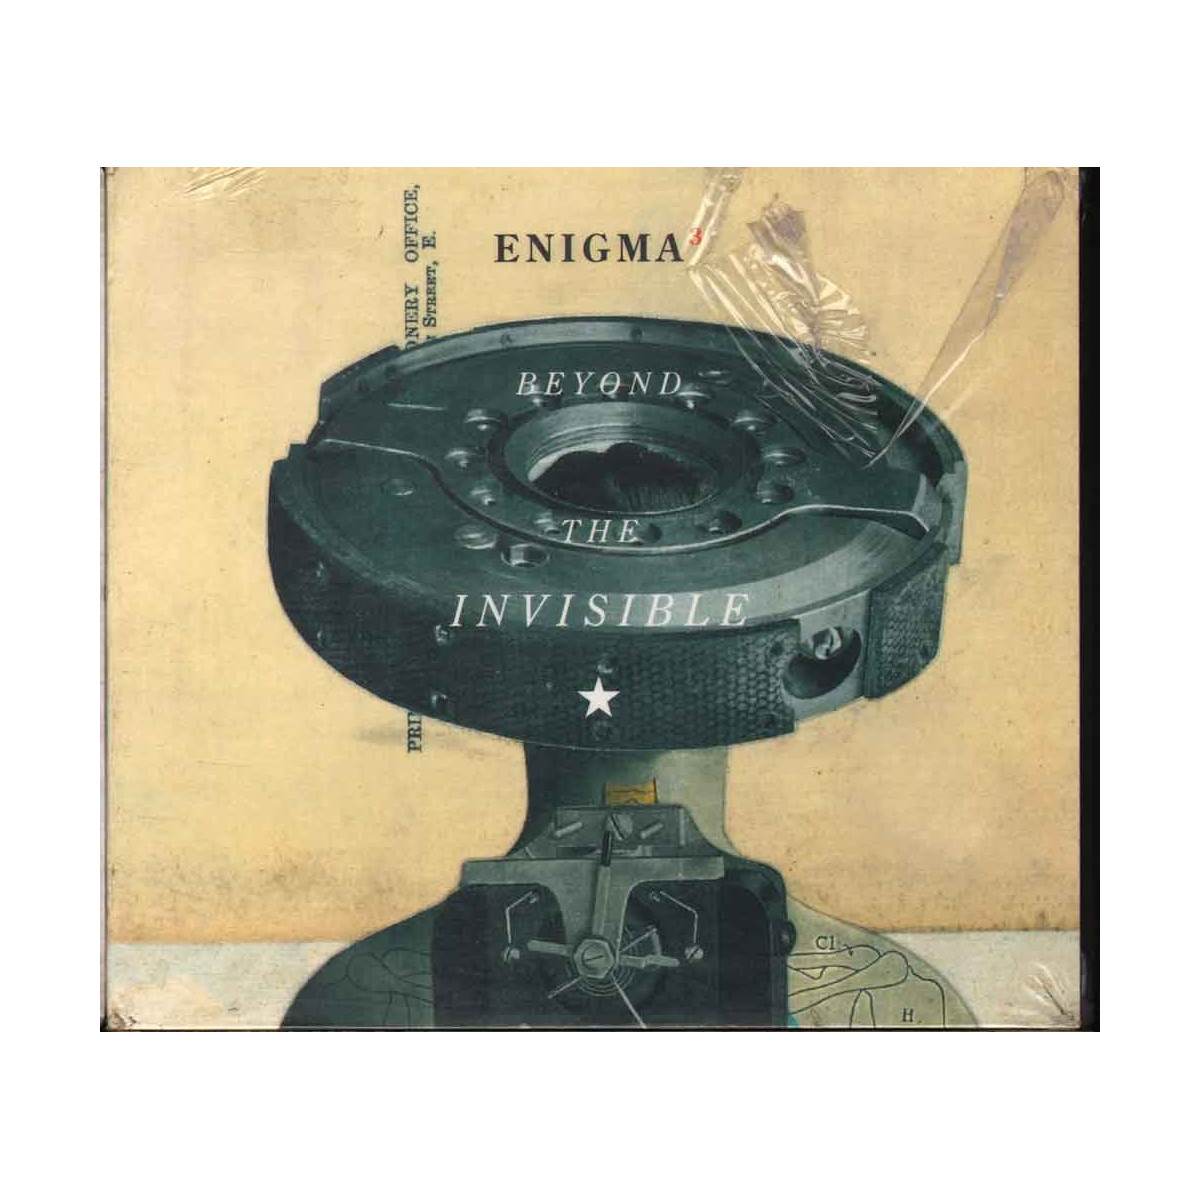 Enigma ‎ CD'S Maxi - Beyond The Invisible Nuovo Sigillato 0724389382228